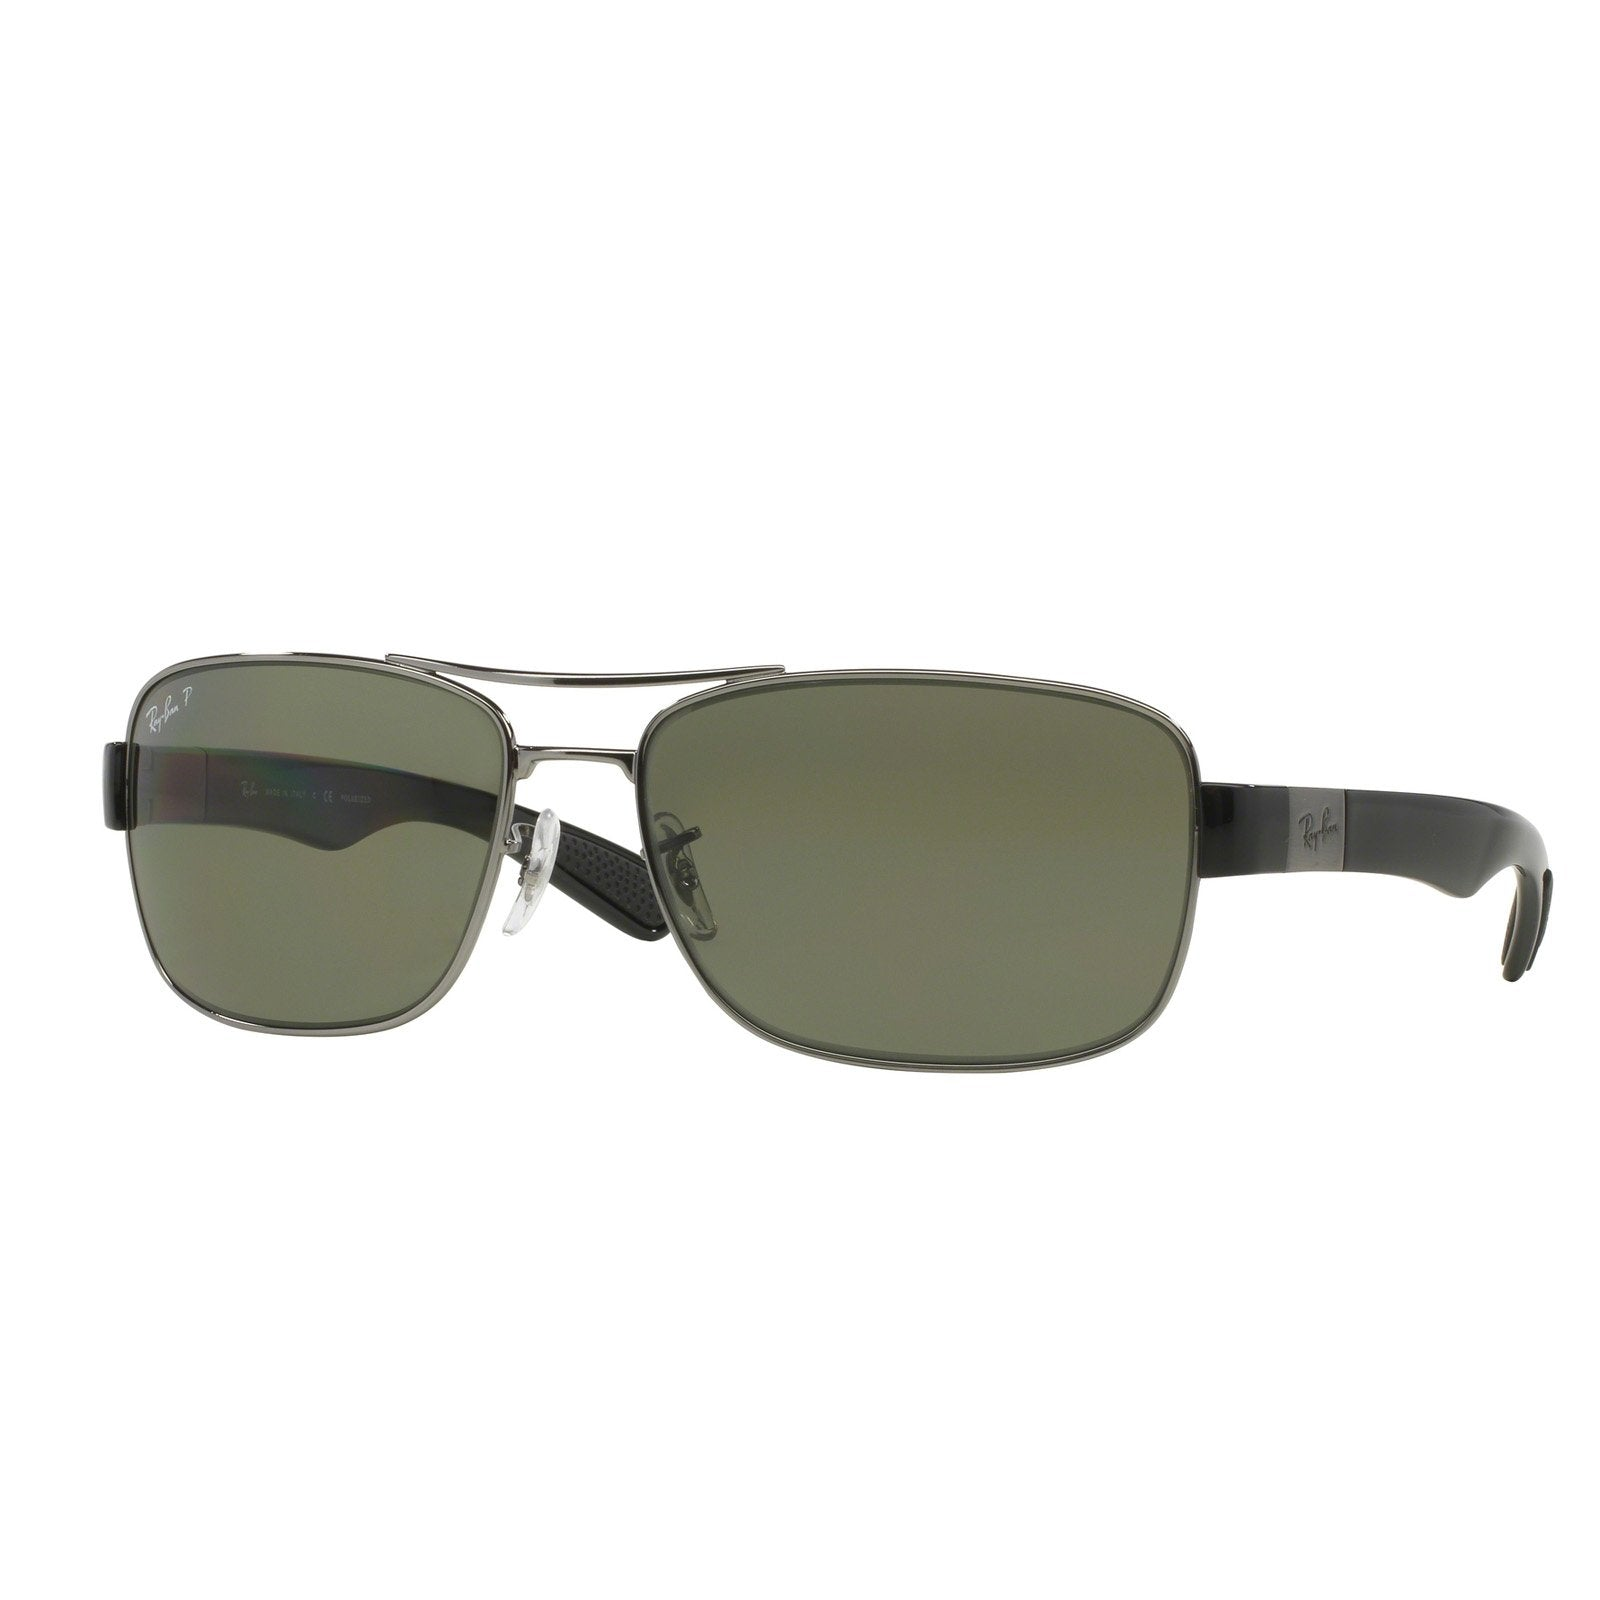 Ray-Ban RB3522 004/9A Sunglasses